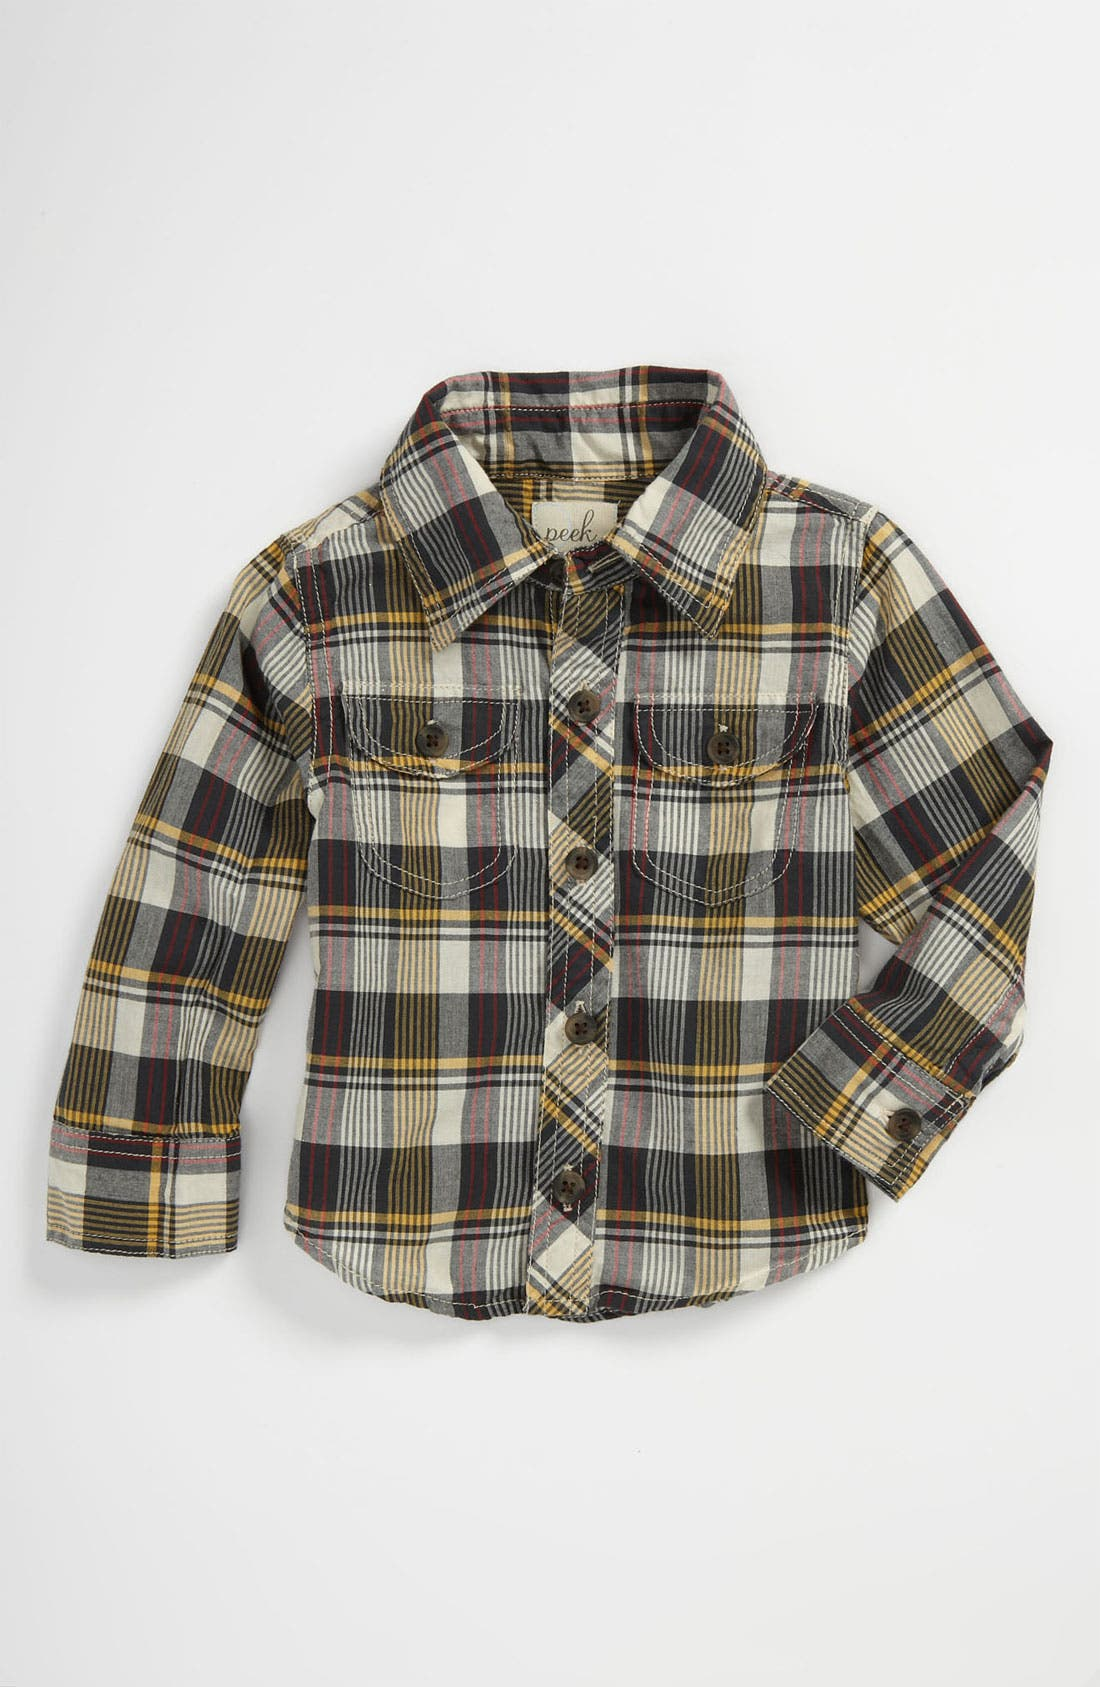 Alternate Image 1 Selected - Peek 'Camden' Plaid Shirt (Baby)